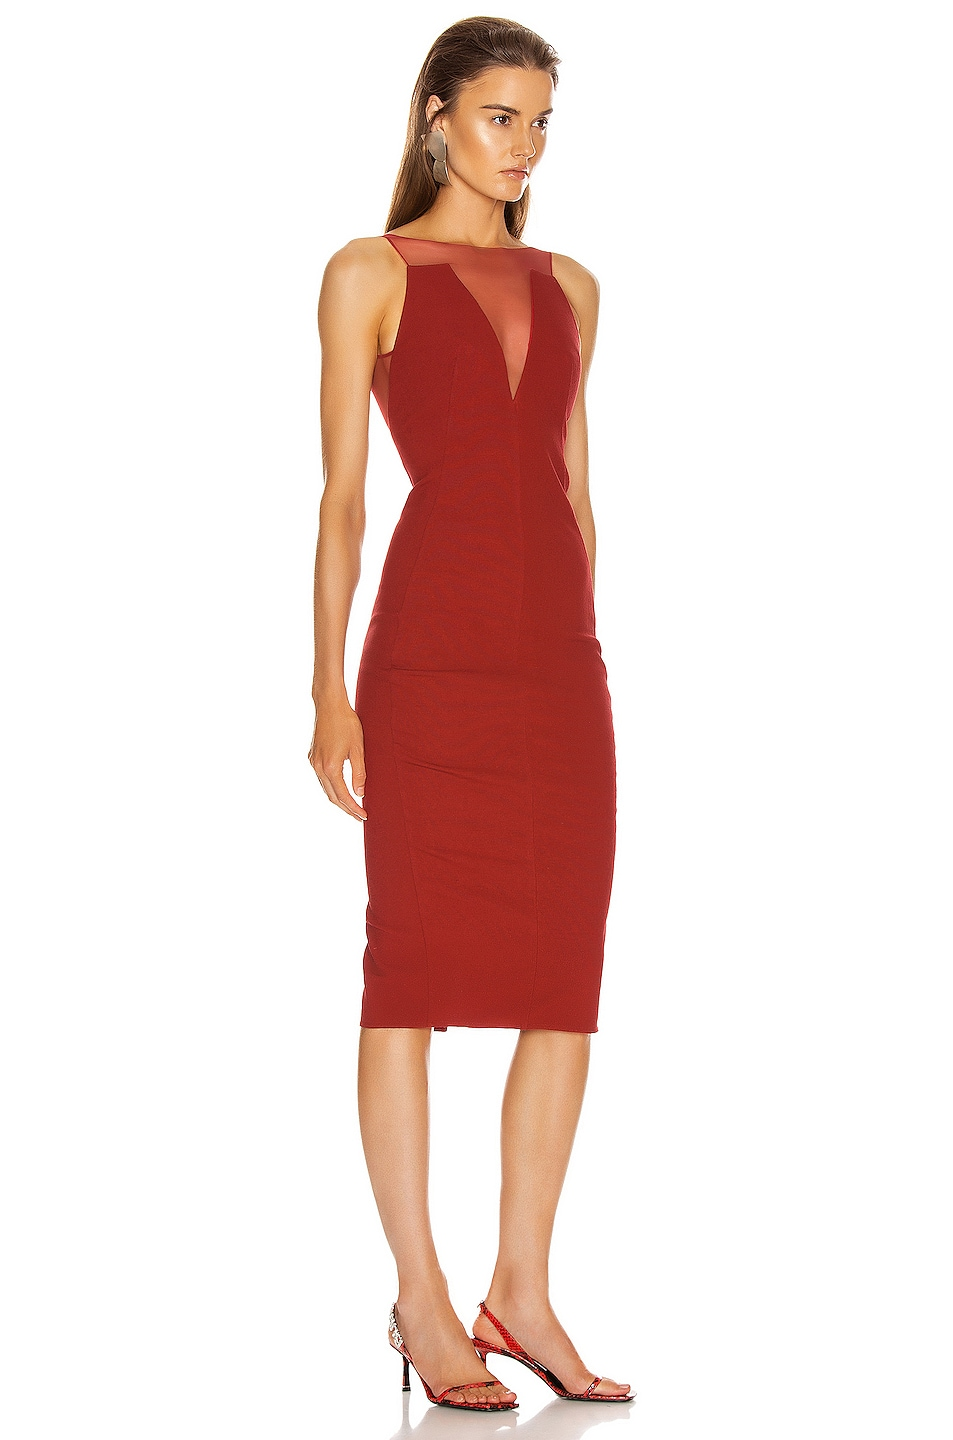 Image 2 of Rick Owens Prong Dress in Cardinal Red